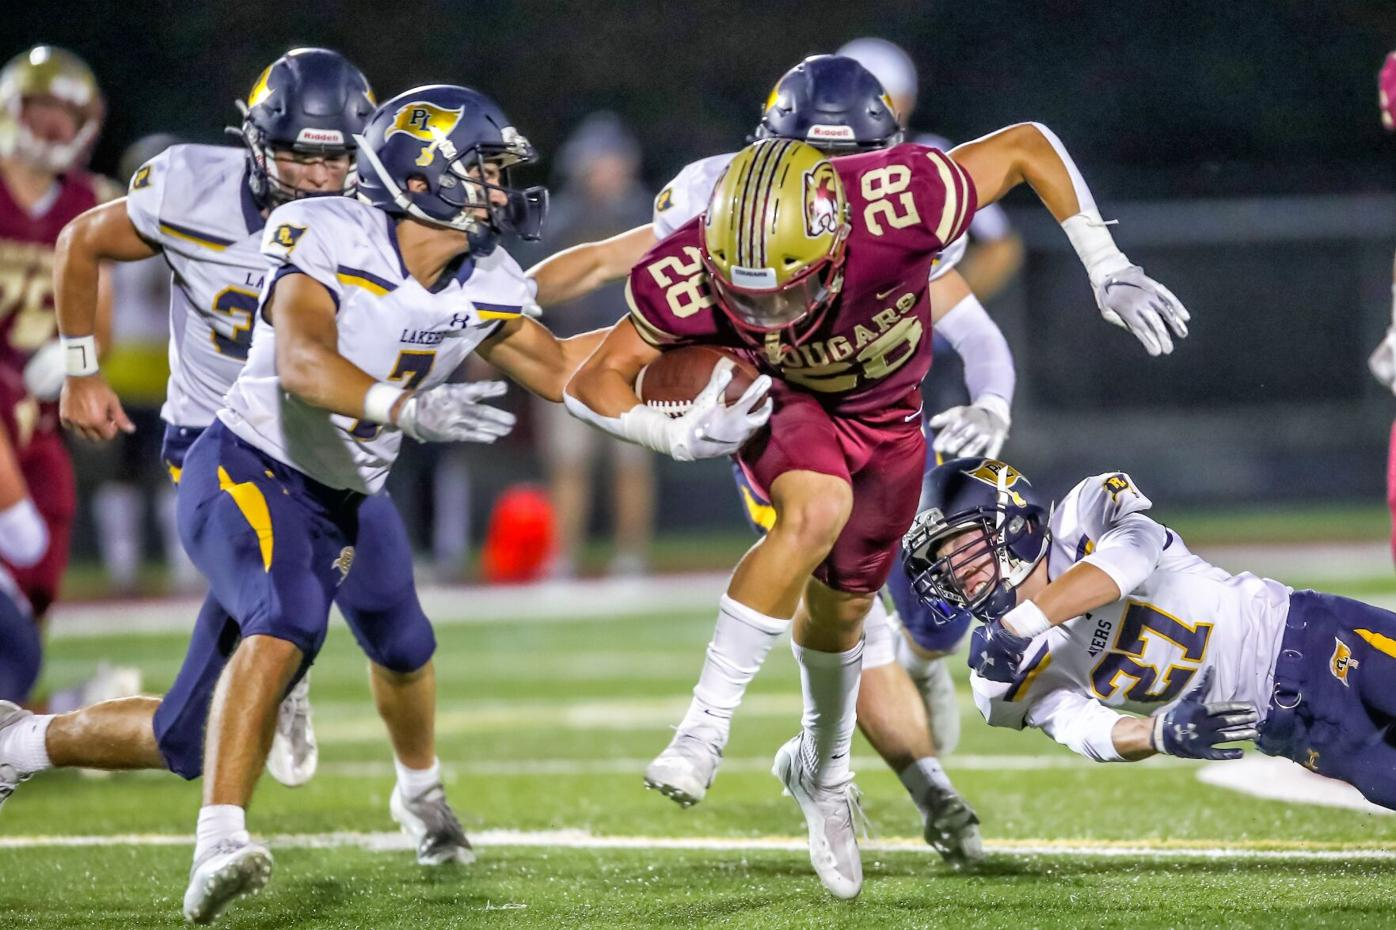 Football Week 6: Cougars march on, defeat Prior Lake